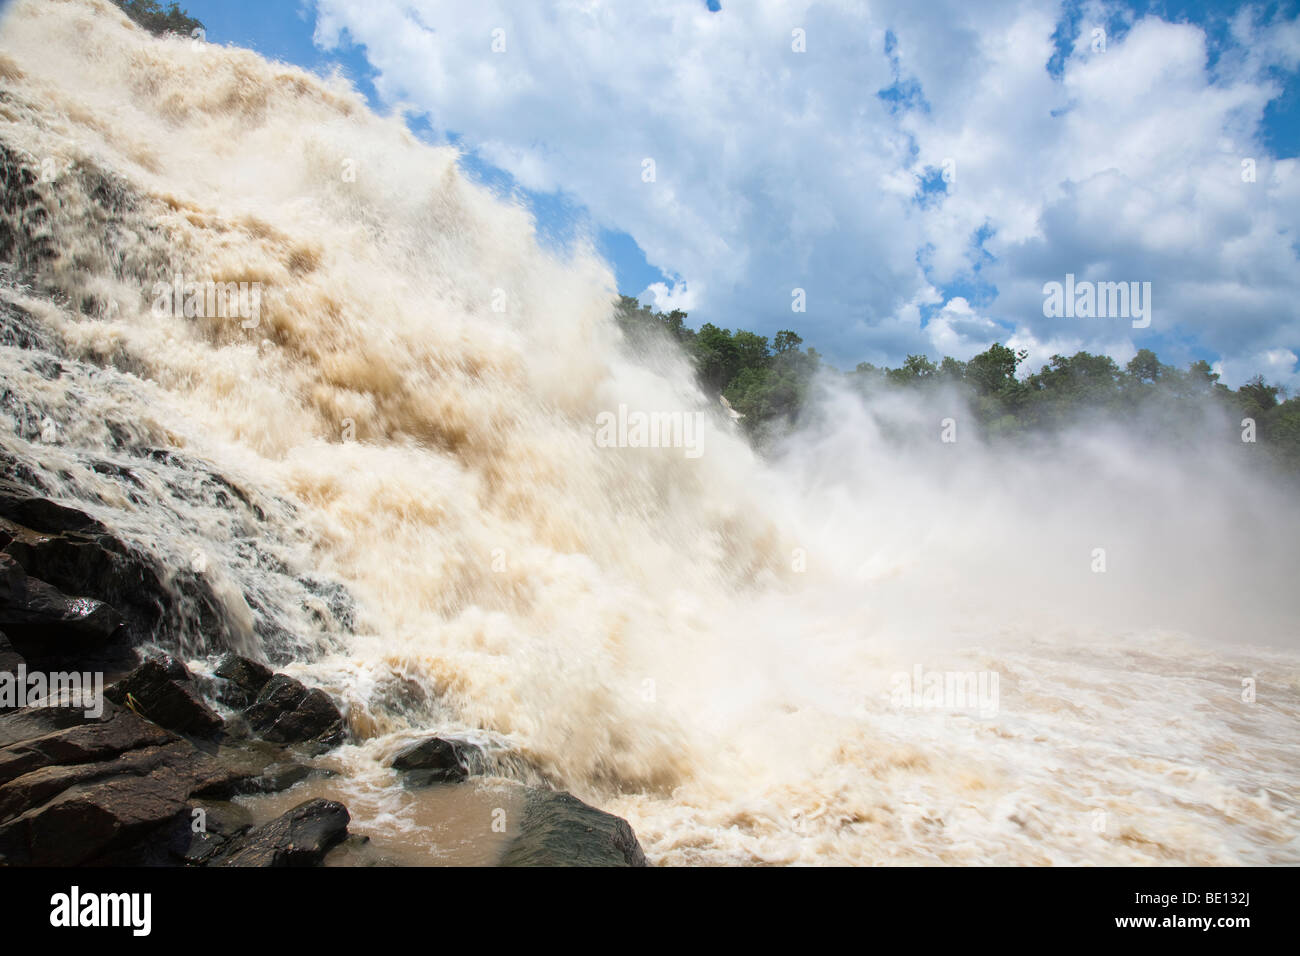 The impressive Gurara Falls, on the Gurara River in Nigeria's Niger State, is 200 meters wide boasting a sheer - Stock Image